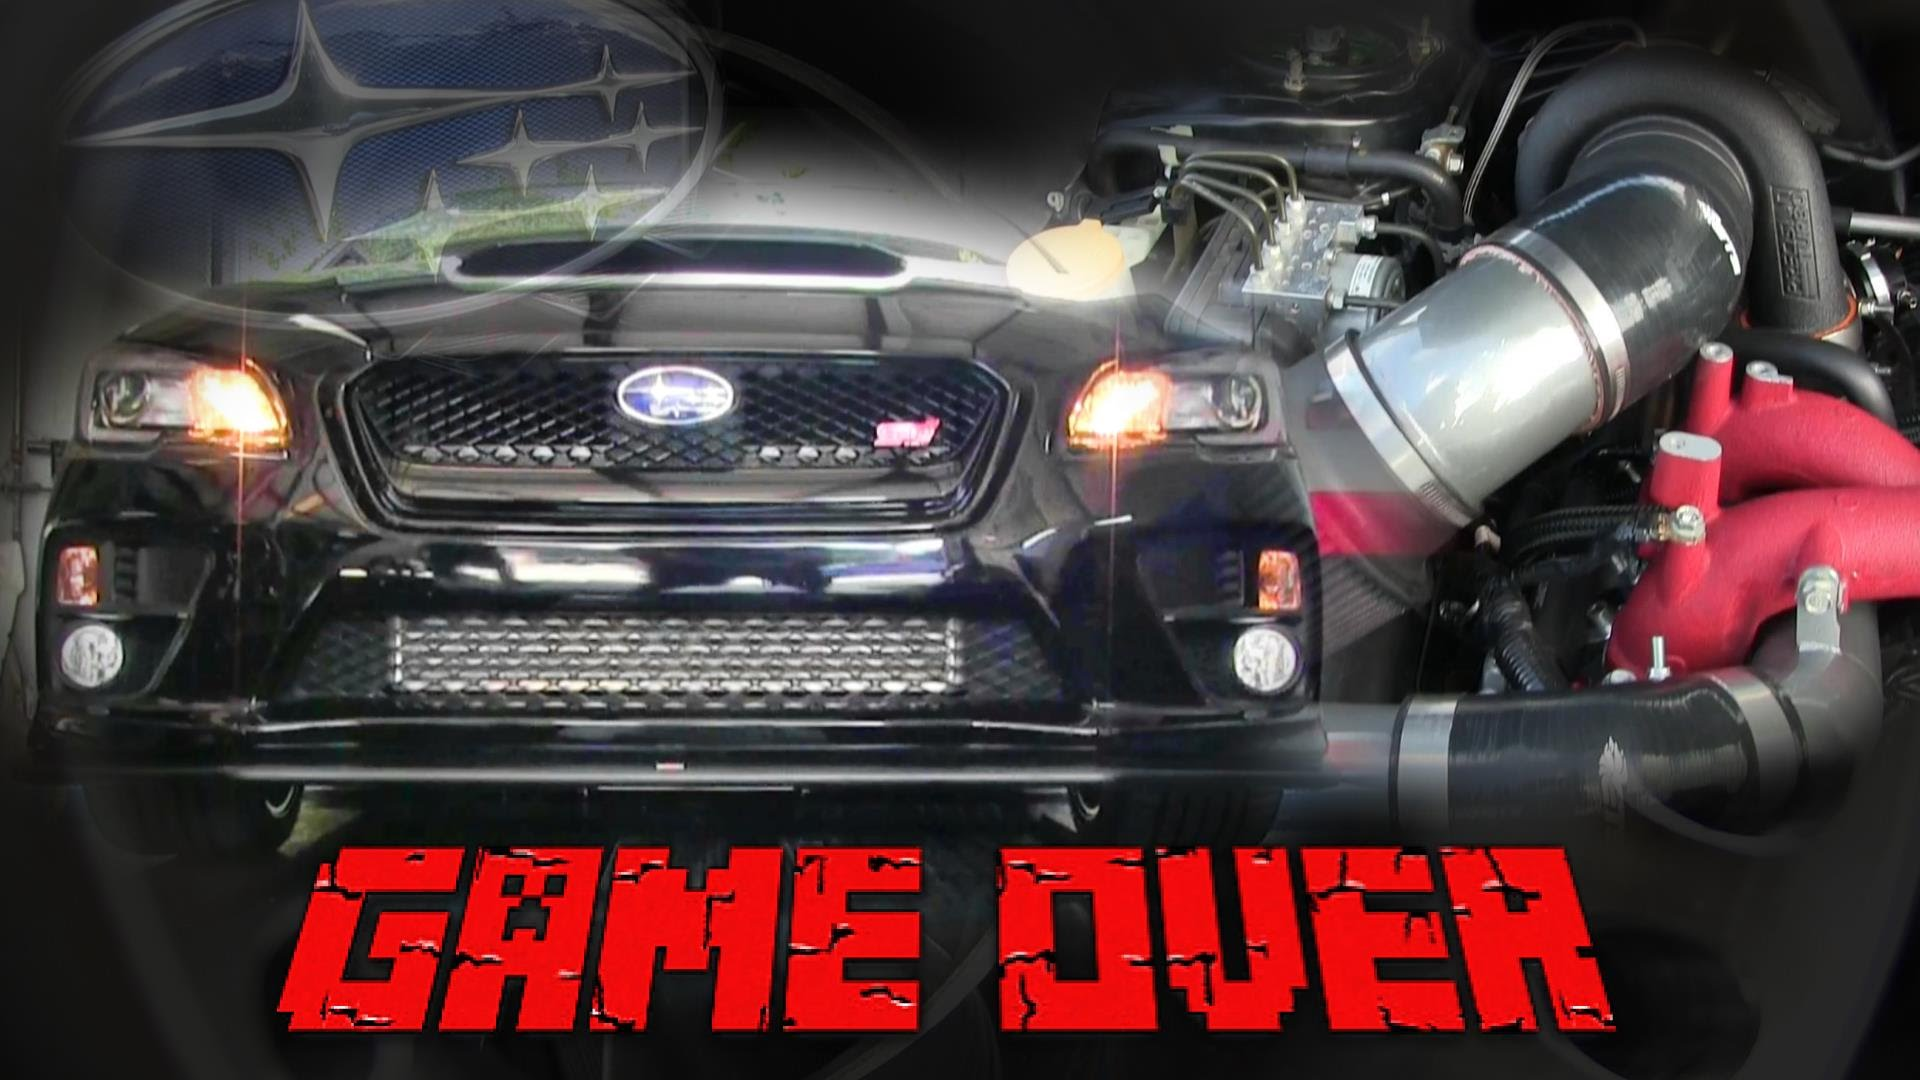 'Game Over' Subaru STi Delivers 700WHP